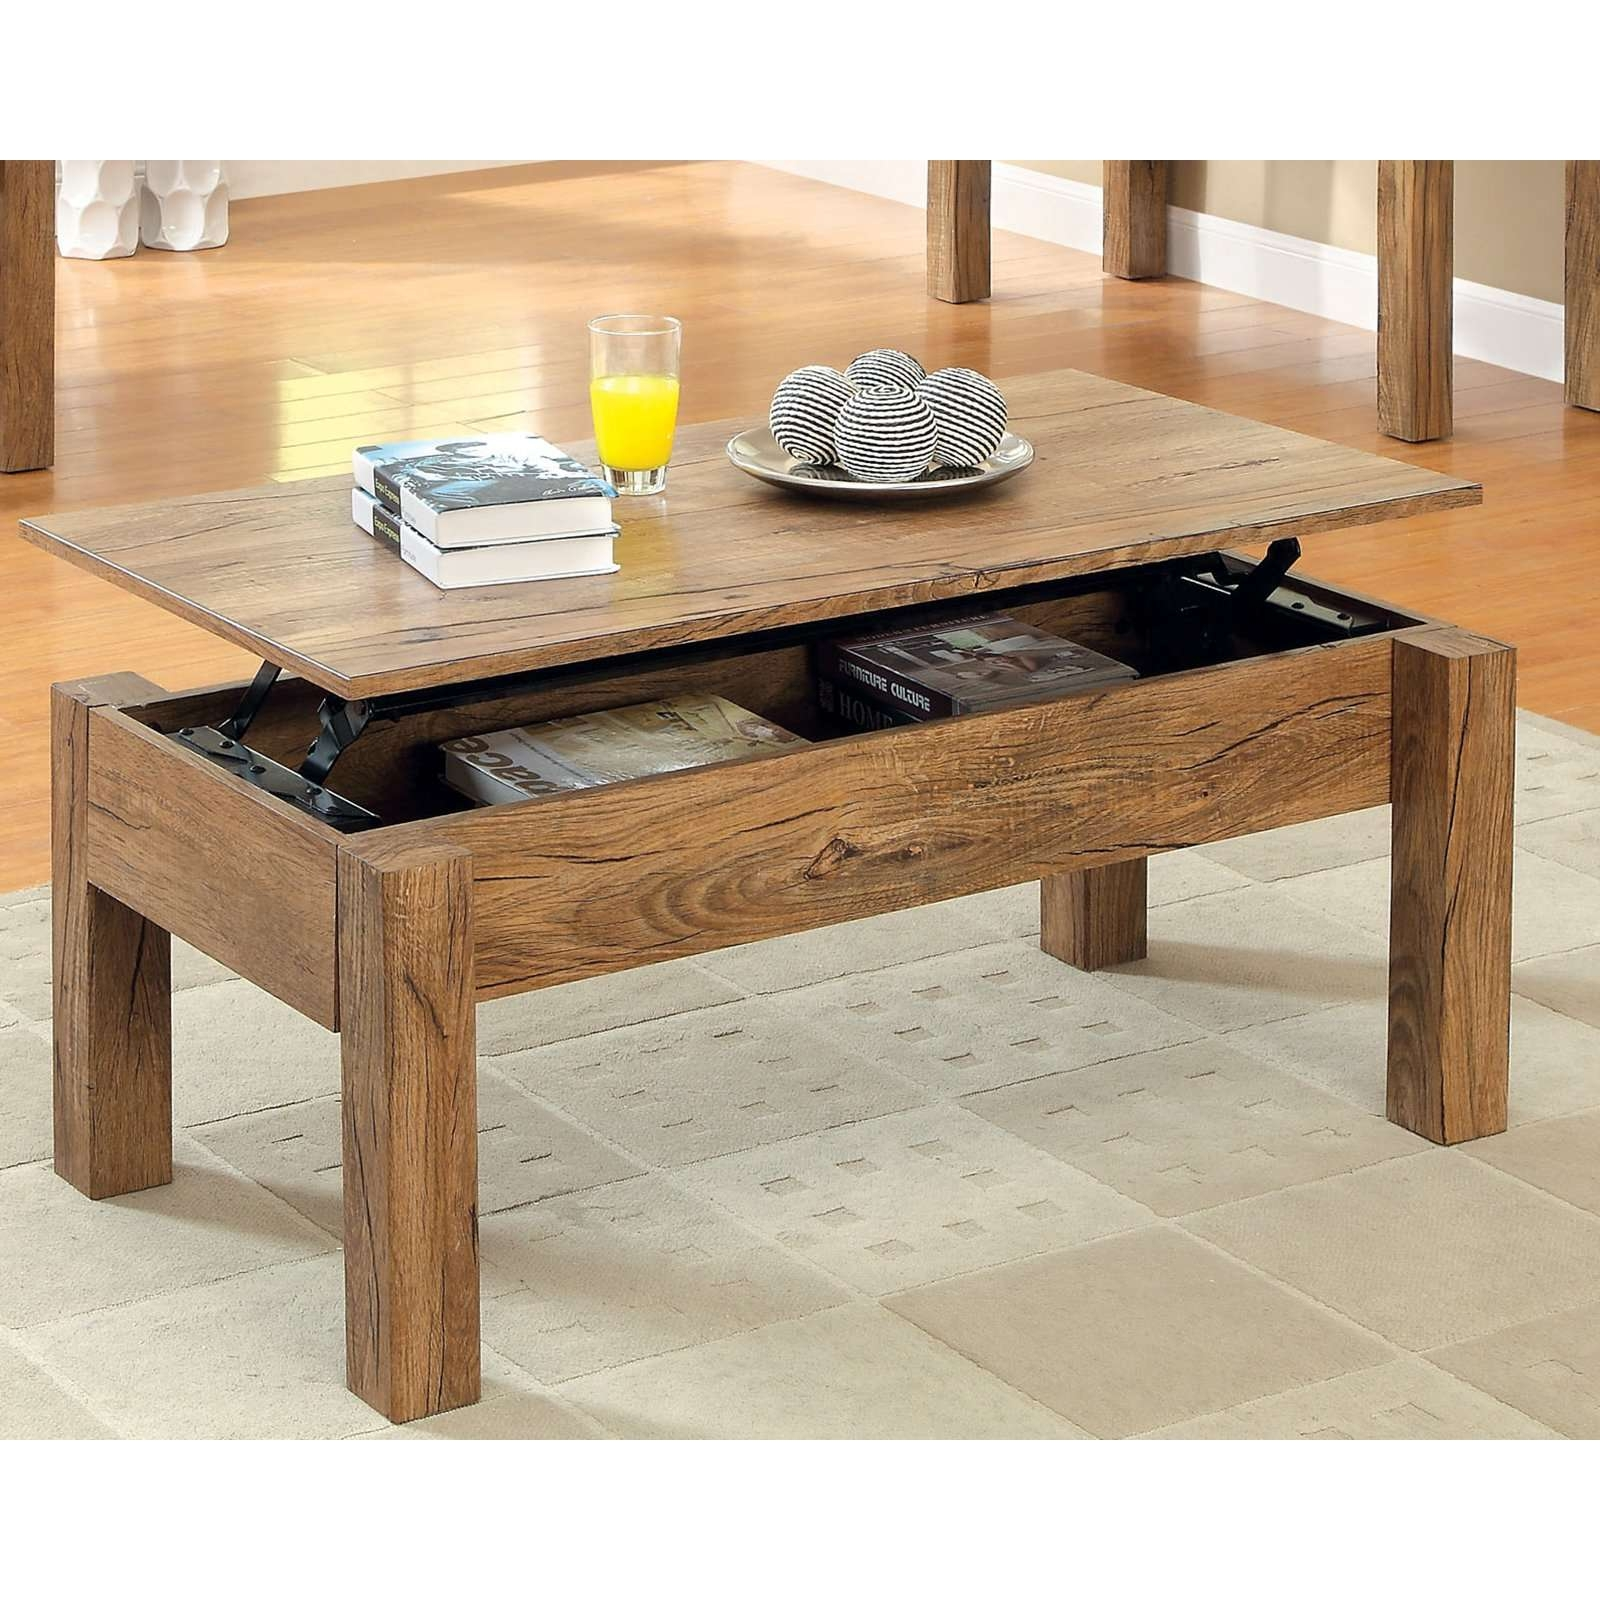 Newest Coffee Tables With Lift Top Storage For Coffee Tables : Simple Walnut Coffee Table Lift Top With Stools (View 12 of 20)